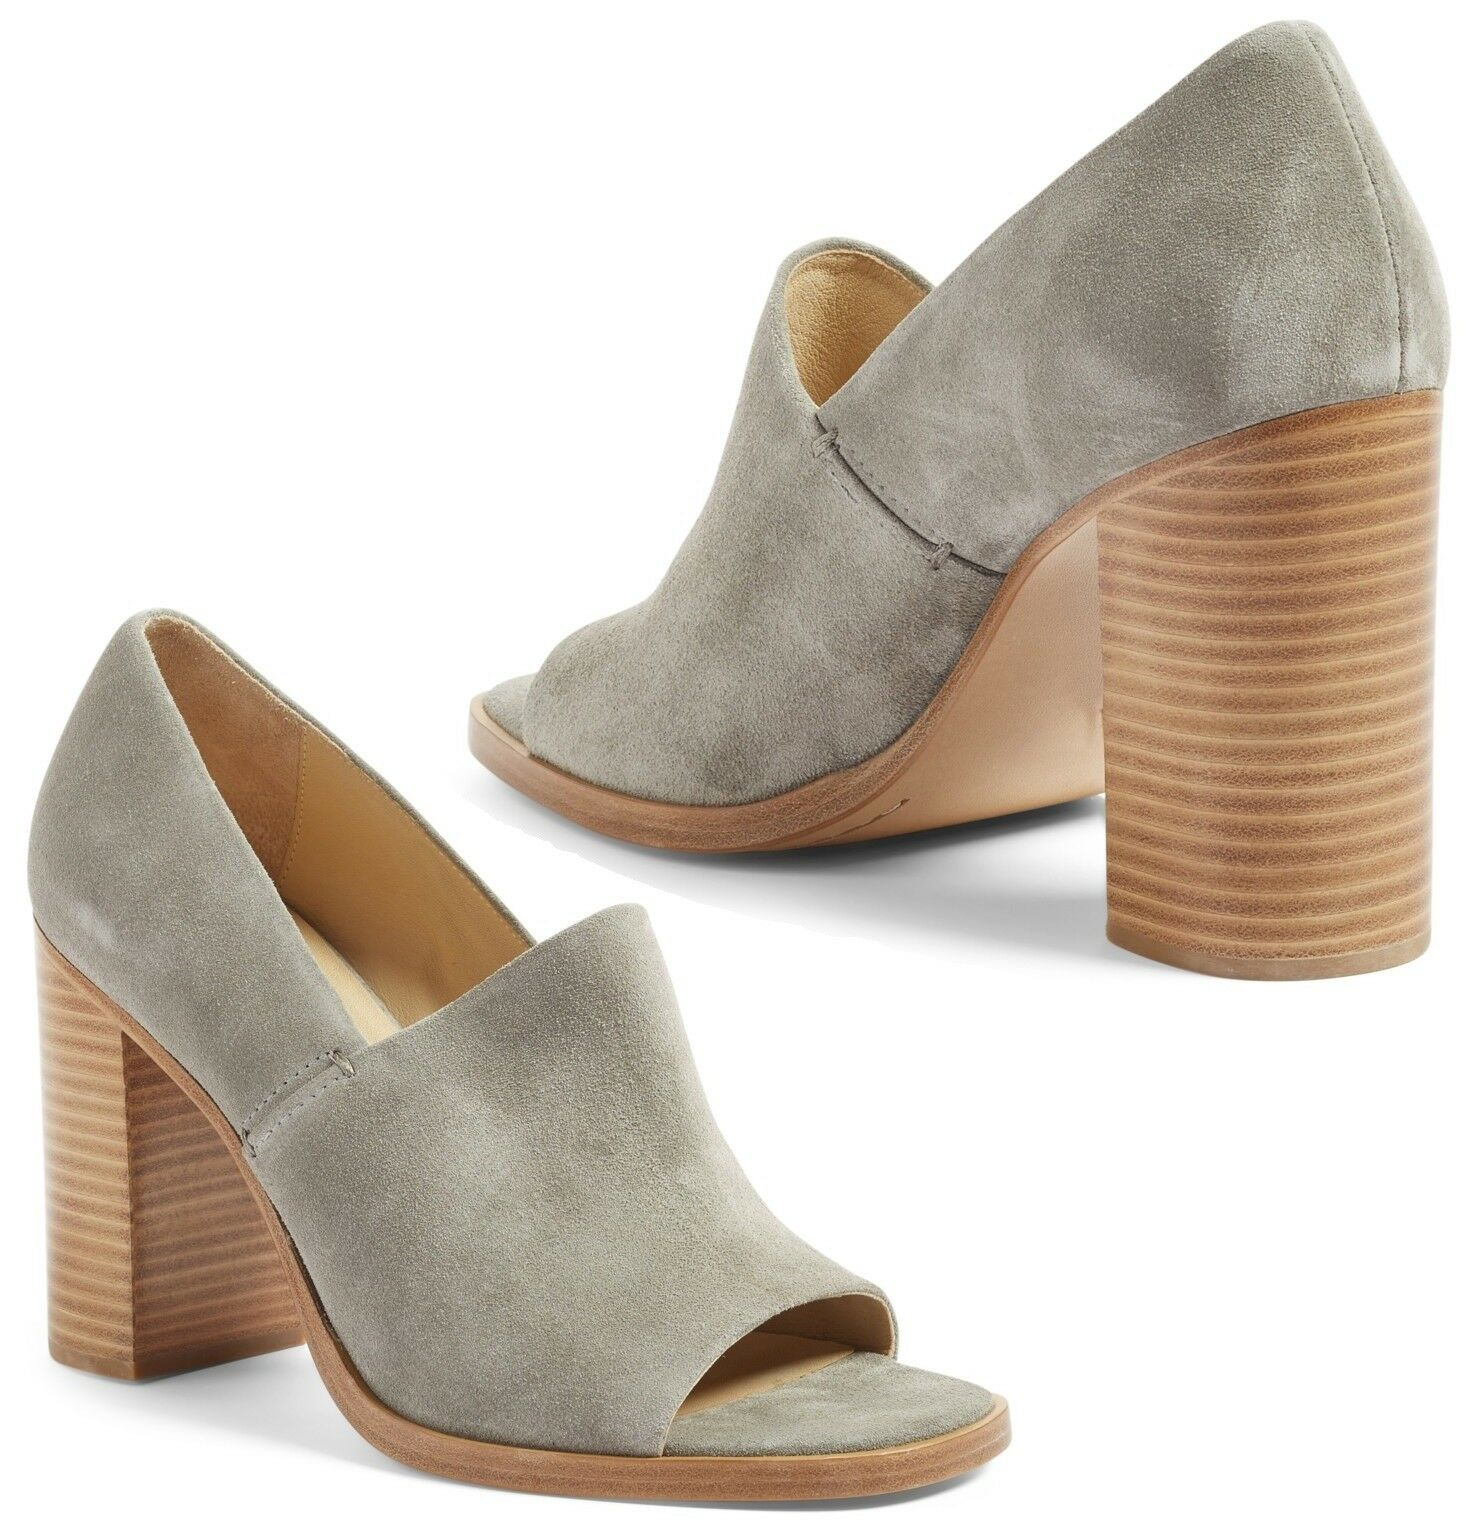 NIB  495 Rag & Bone Myra Suede Open Toe Pump